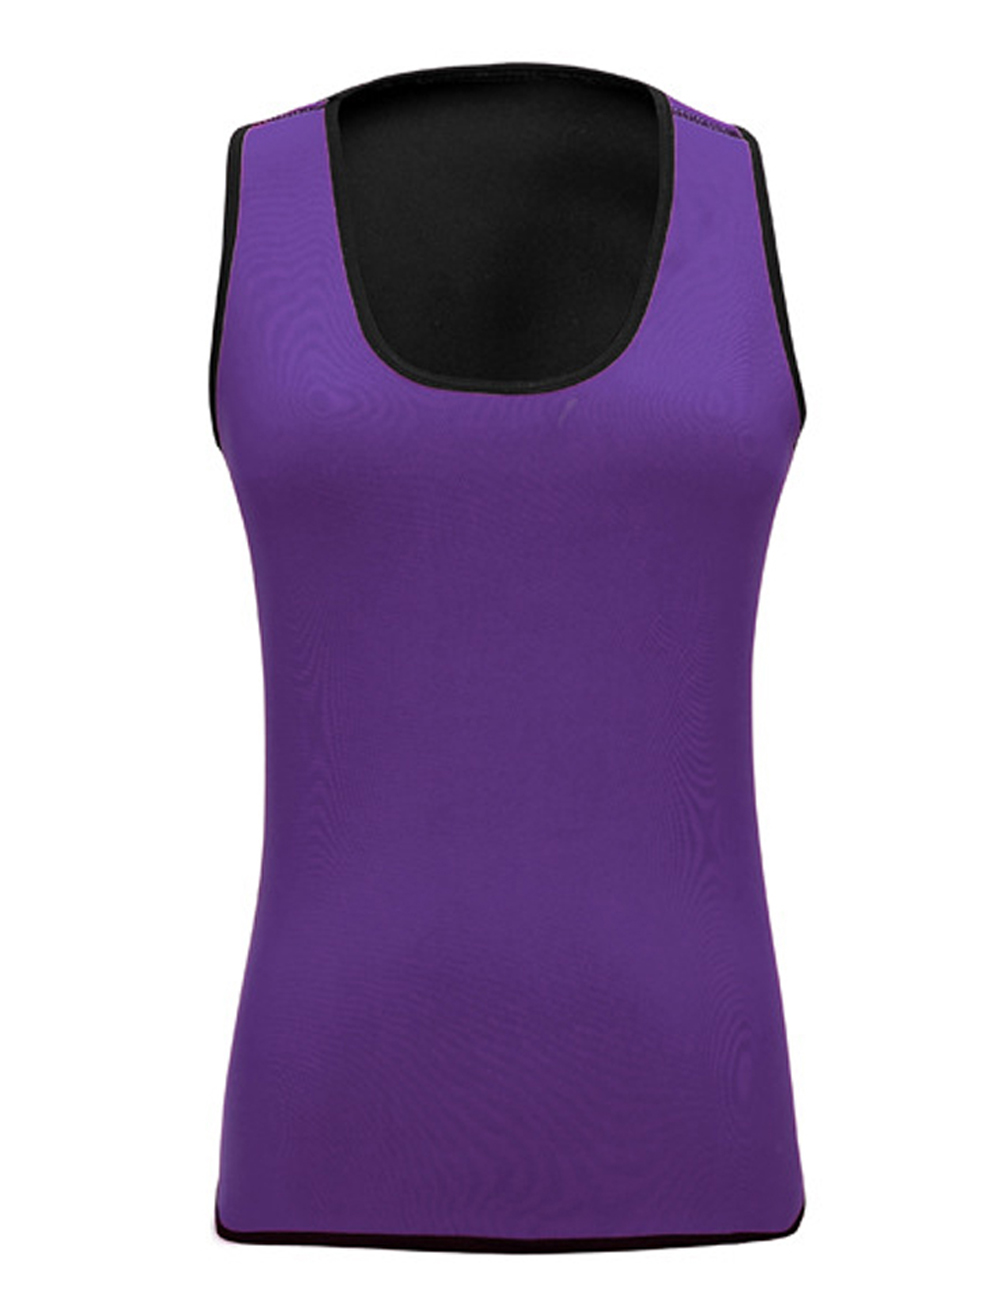 //cdn.affectcloud.com/hexinfashion/upload/imgs/SHAPEWEAR/Neoprene_Shaper/B180024PL01/B180024PL01-201911295de07f791954d.jpg